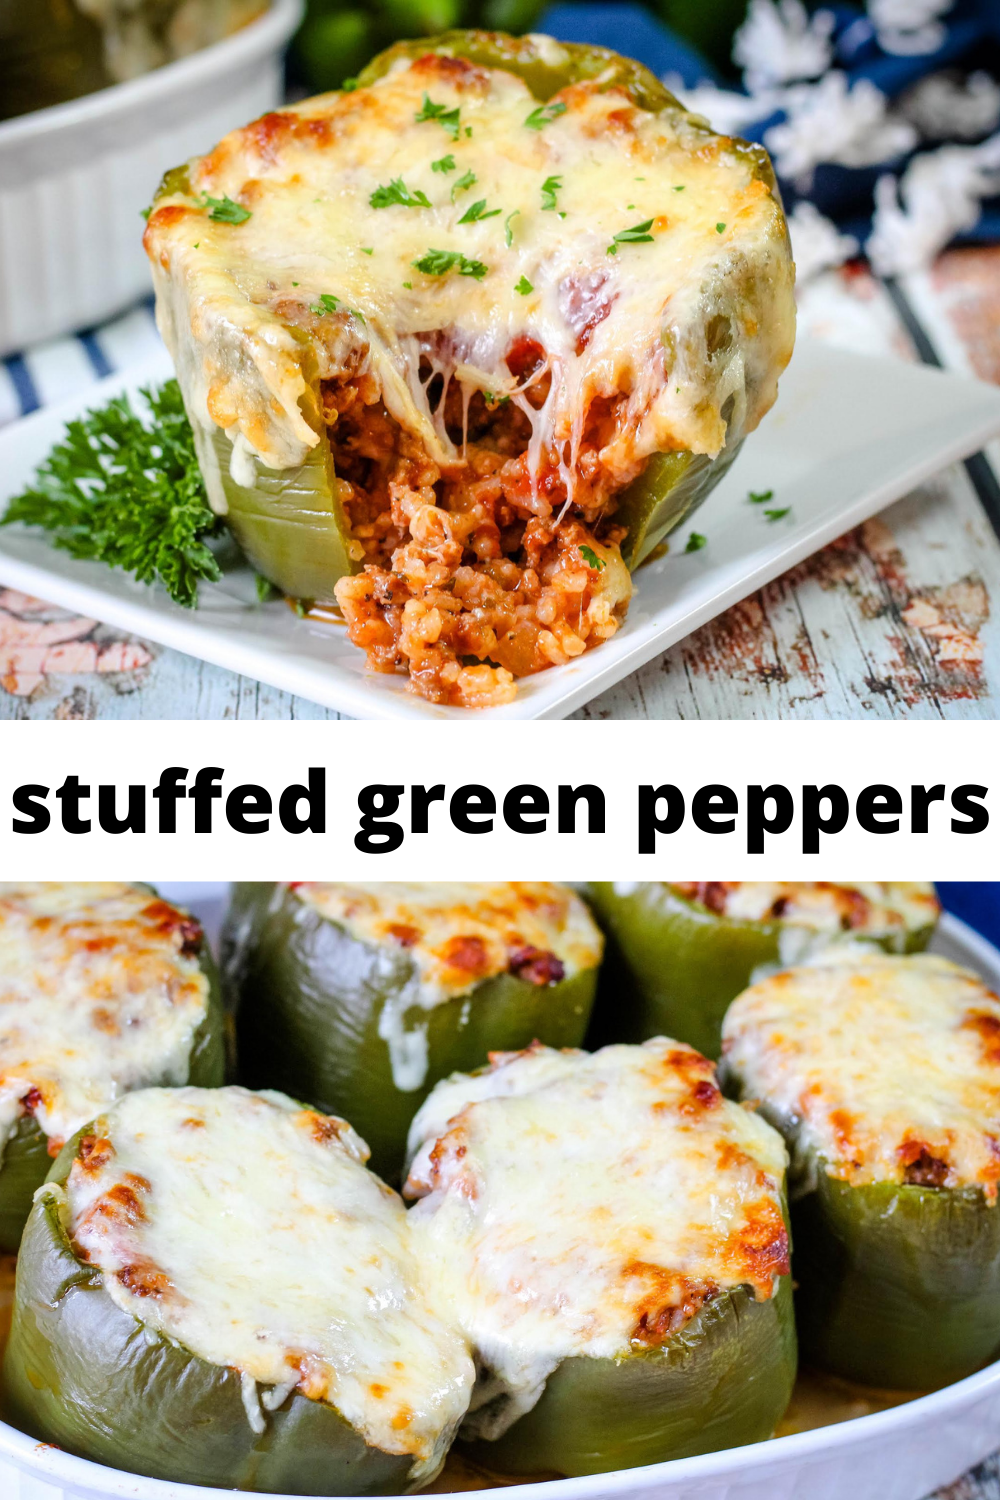 Stuffed Green Peppers Recipe In 2020 Stuffed Peppers Recipes Yummy Casseroles